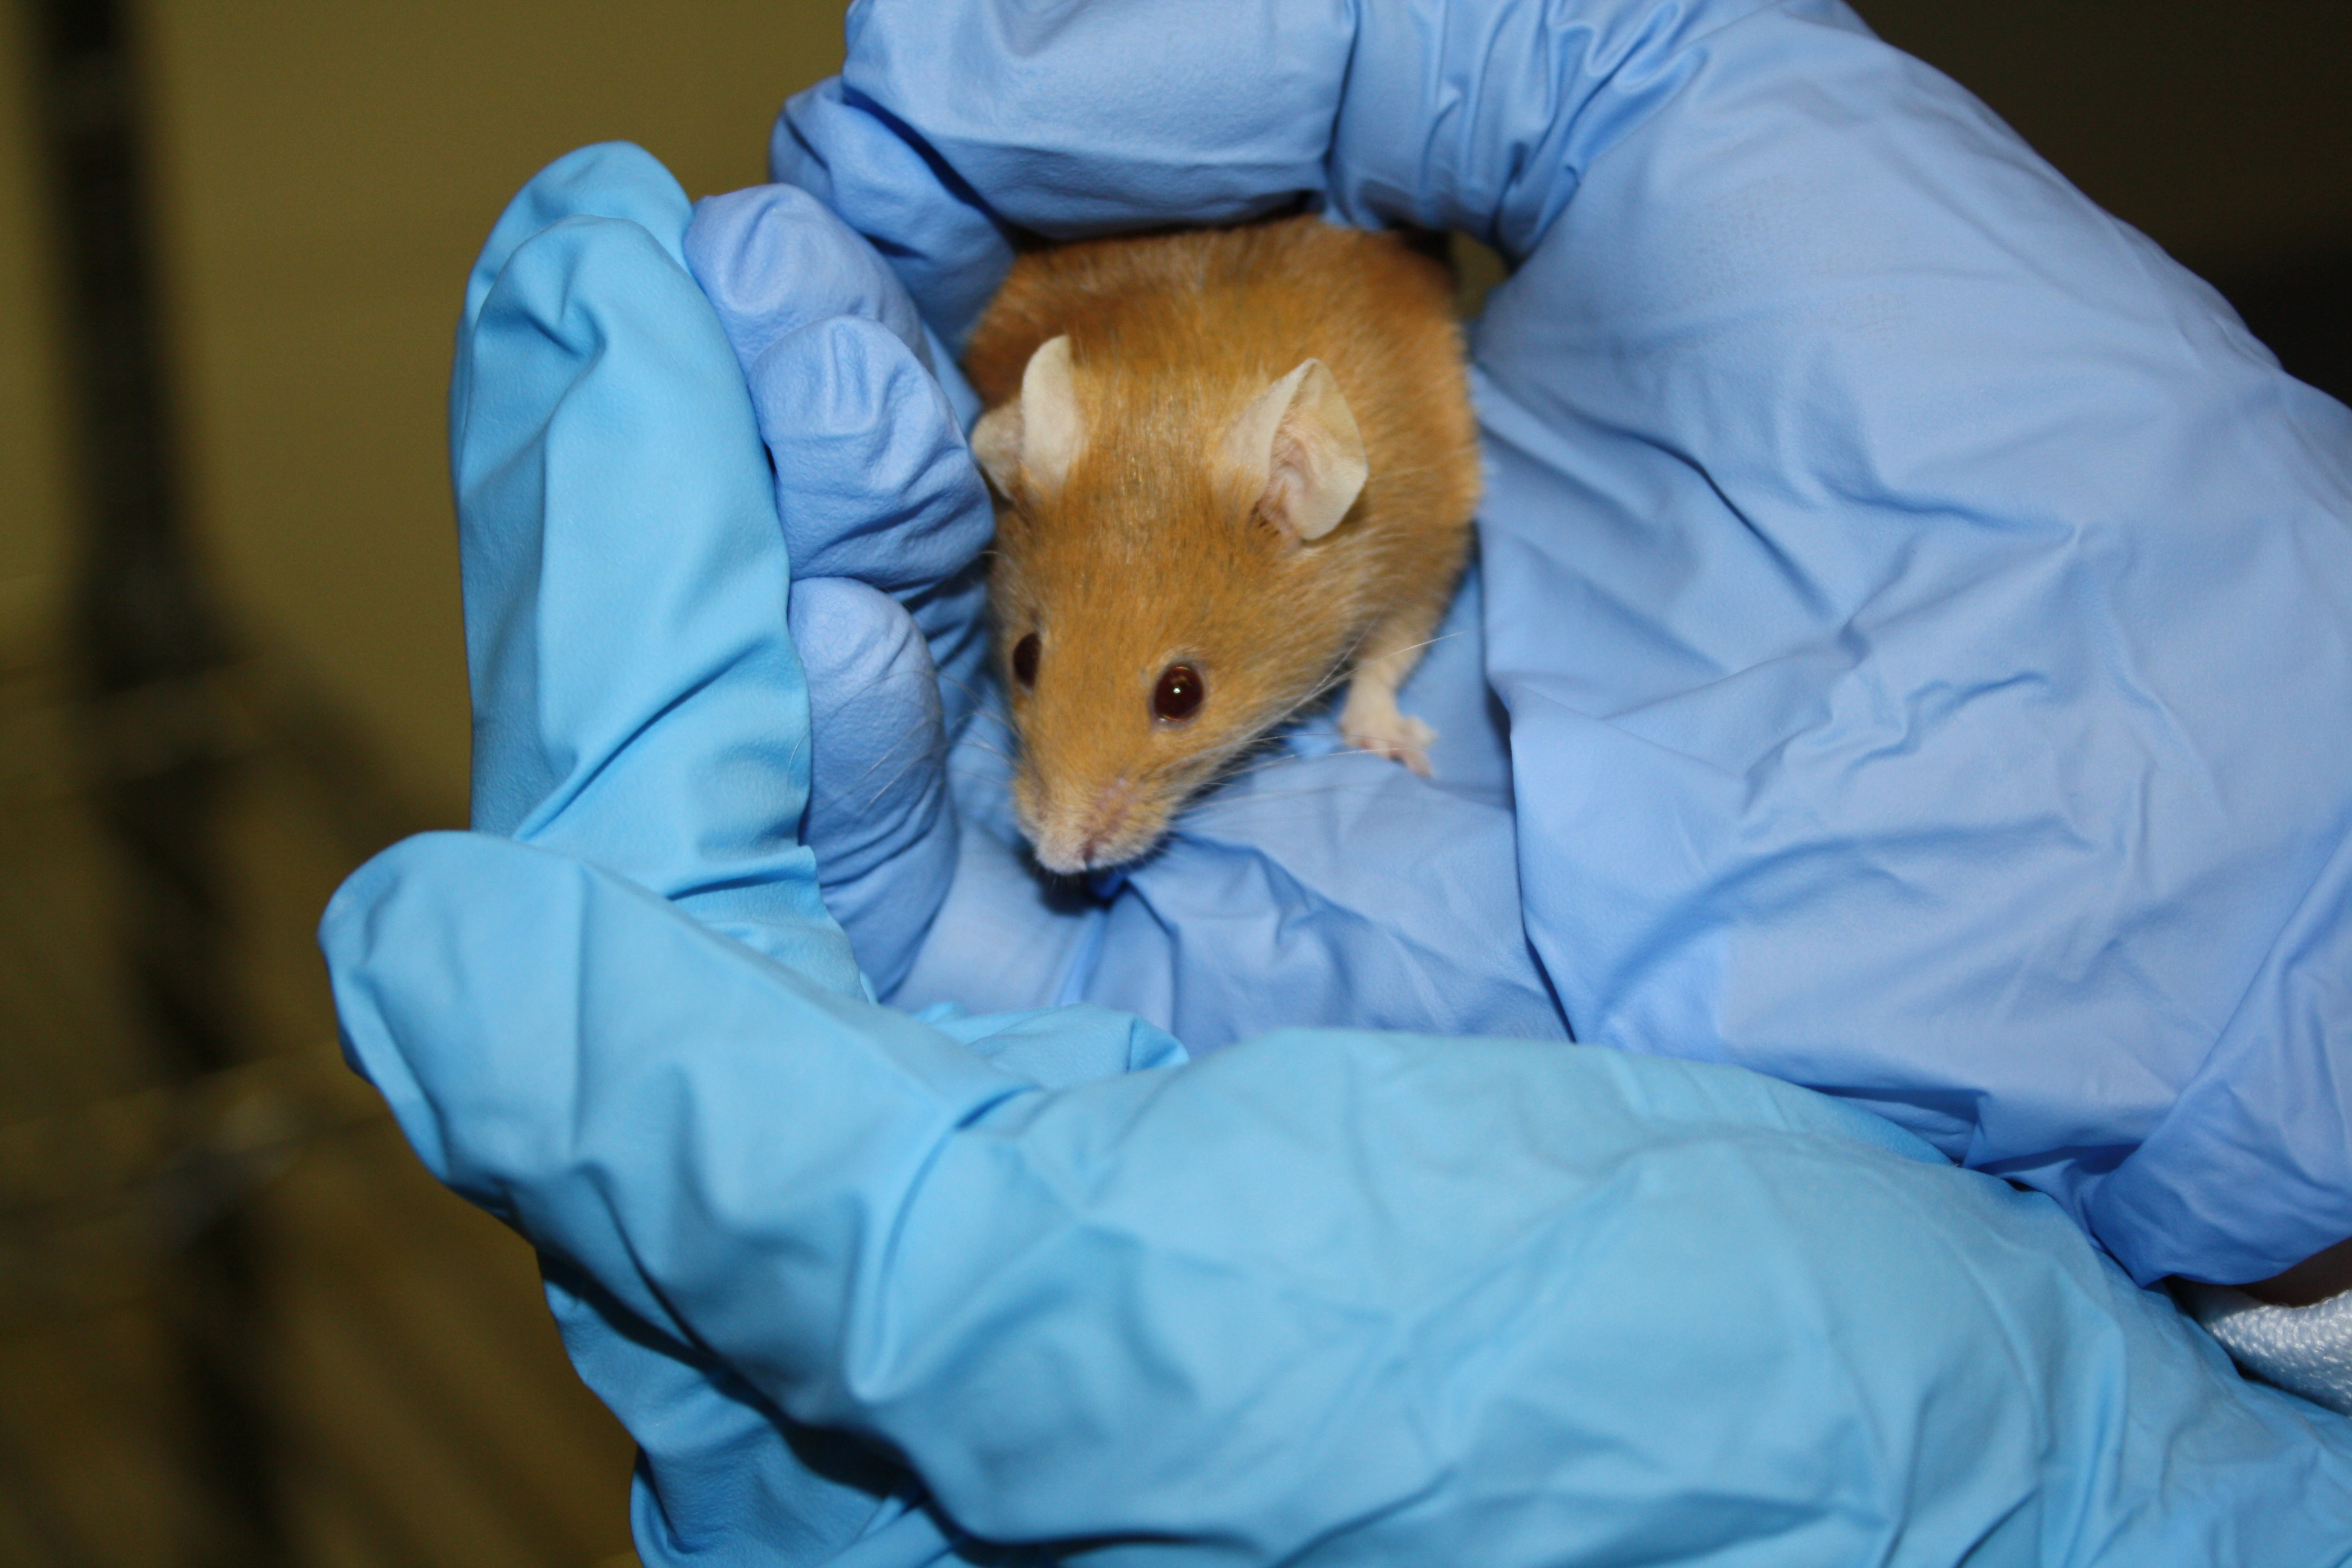 animal testing is crucial in medical research Read this essay on animal testing  as animal research, plays a crucial role in  favour of animal testing is that the result of medical experiments are.